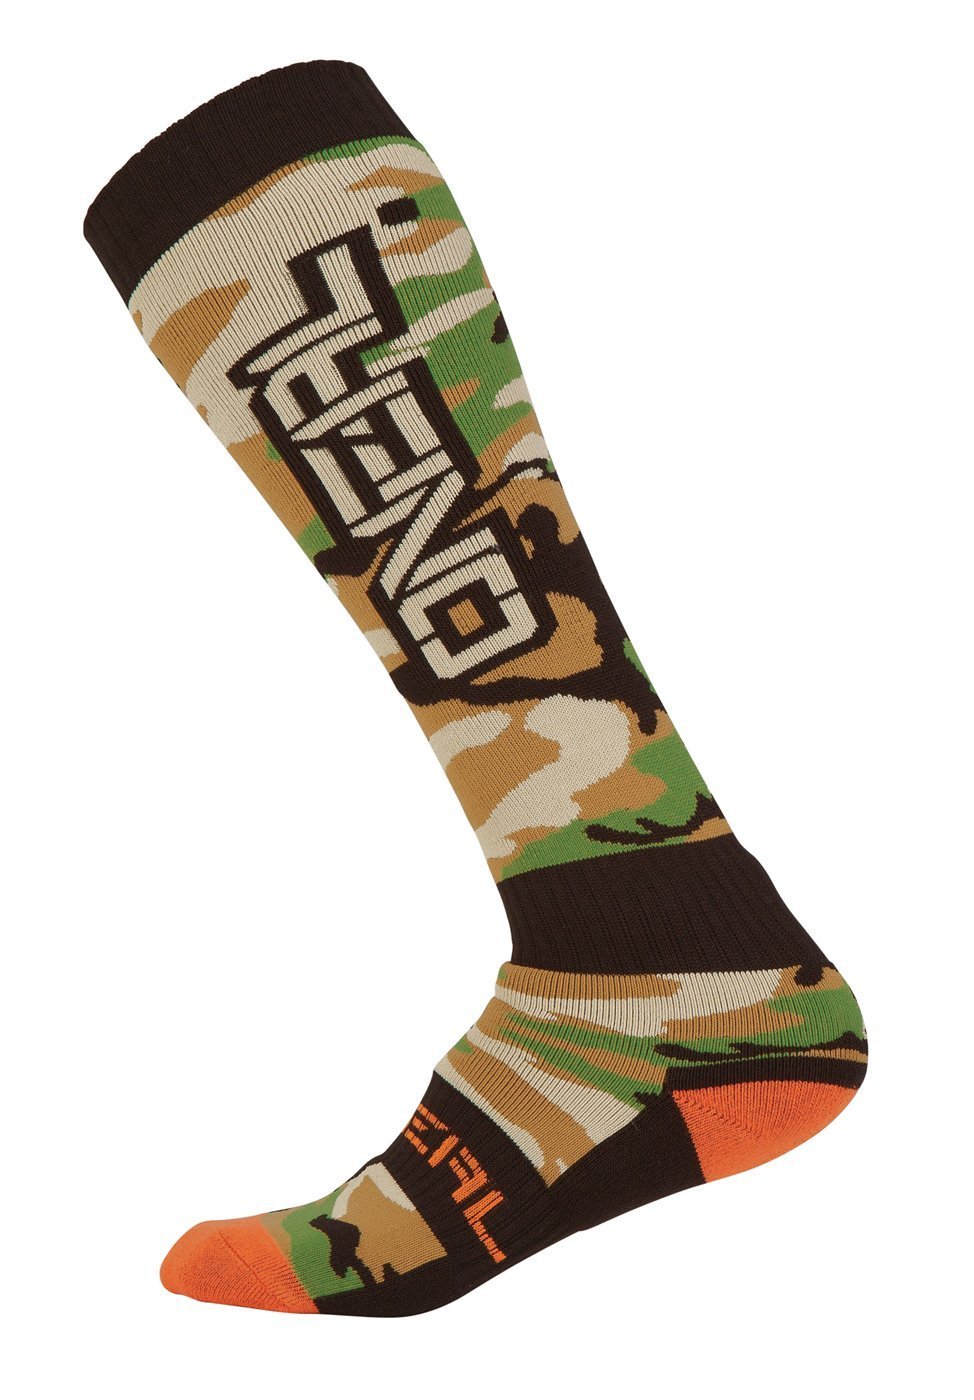 O'Neal 0356-718 Pro MX Woods Camo Sox (Camo, Adult One Size)